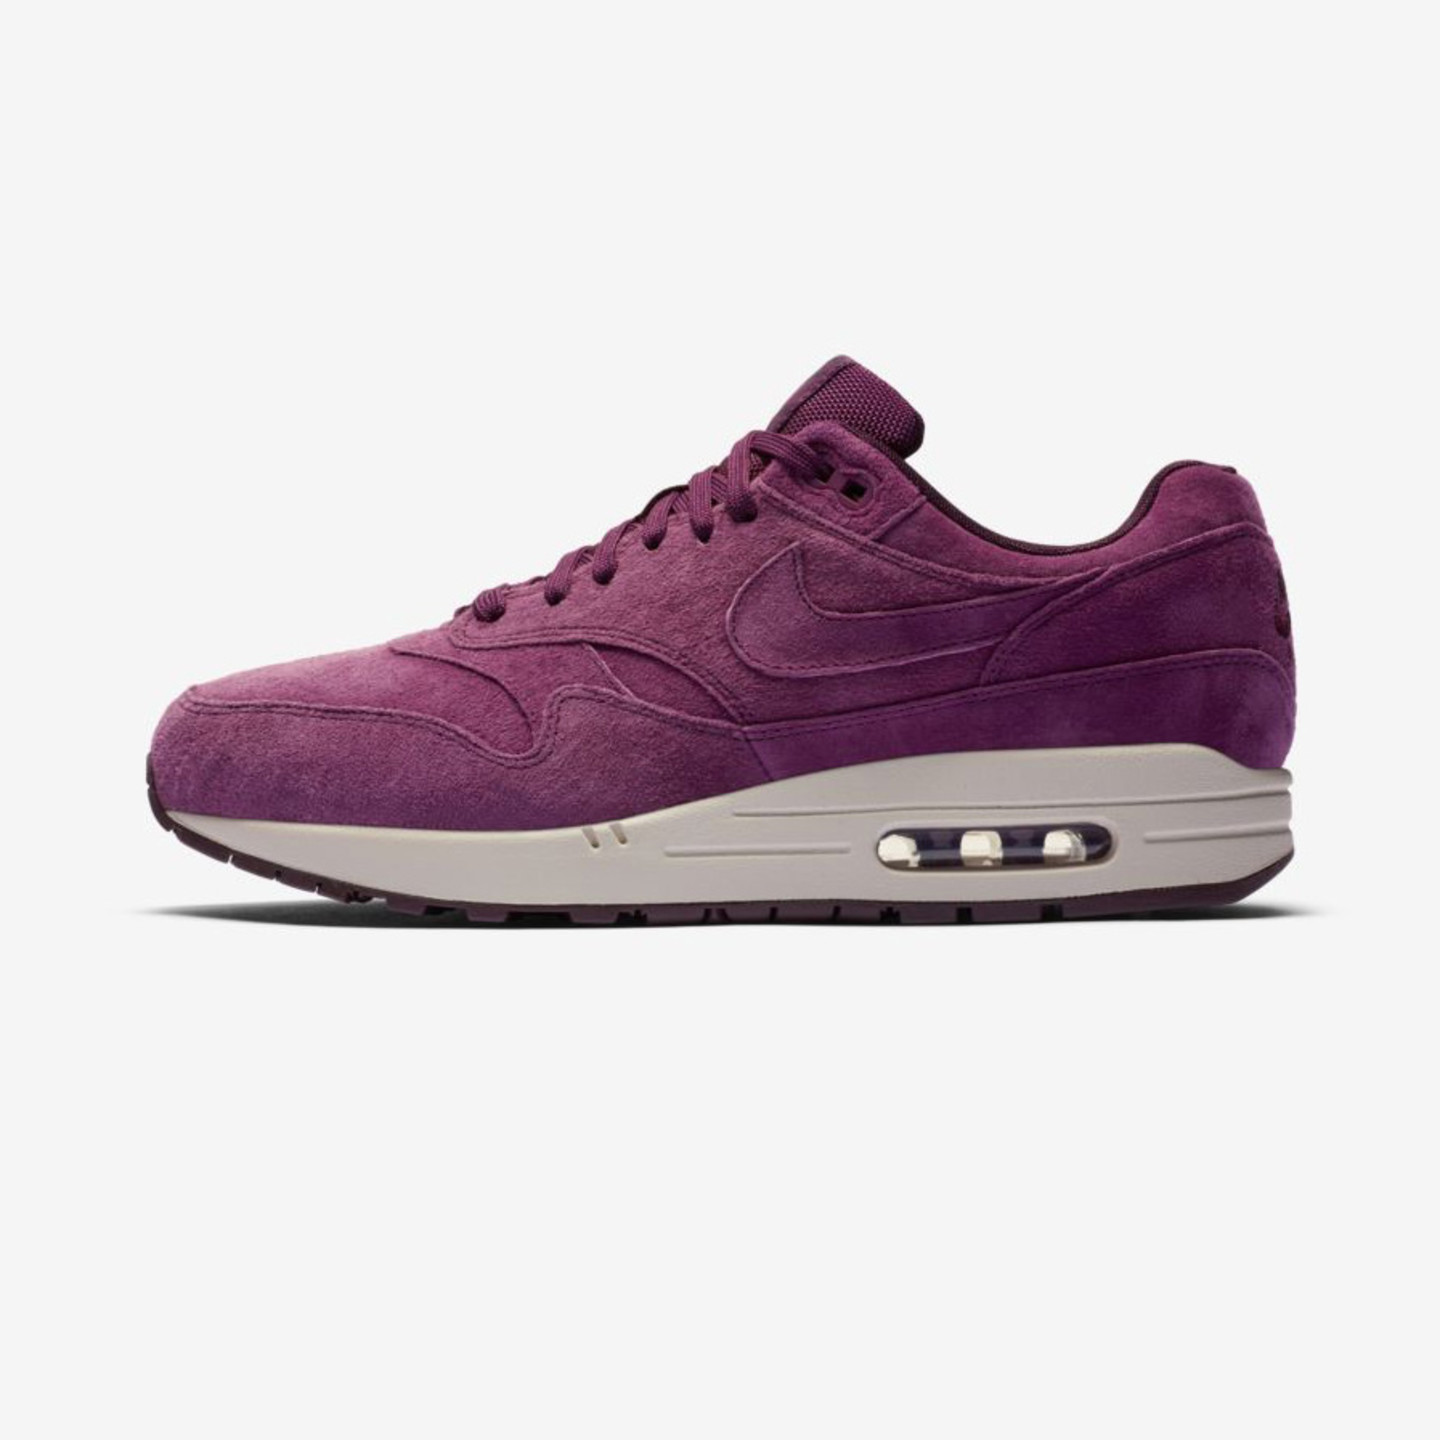 Nike Air Max 1 Bordeaux / Desert Sand 875844-602